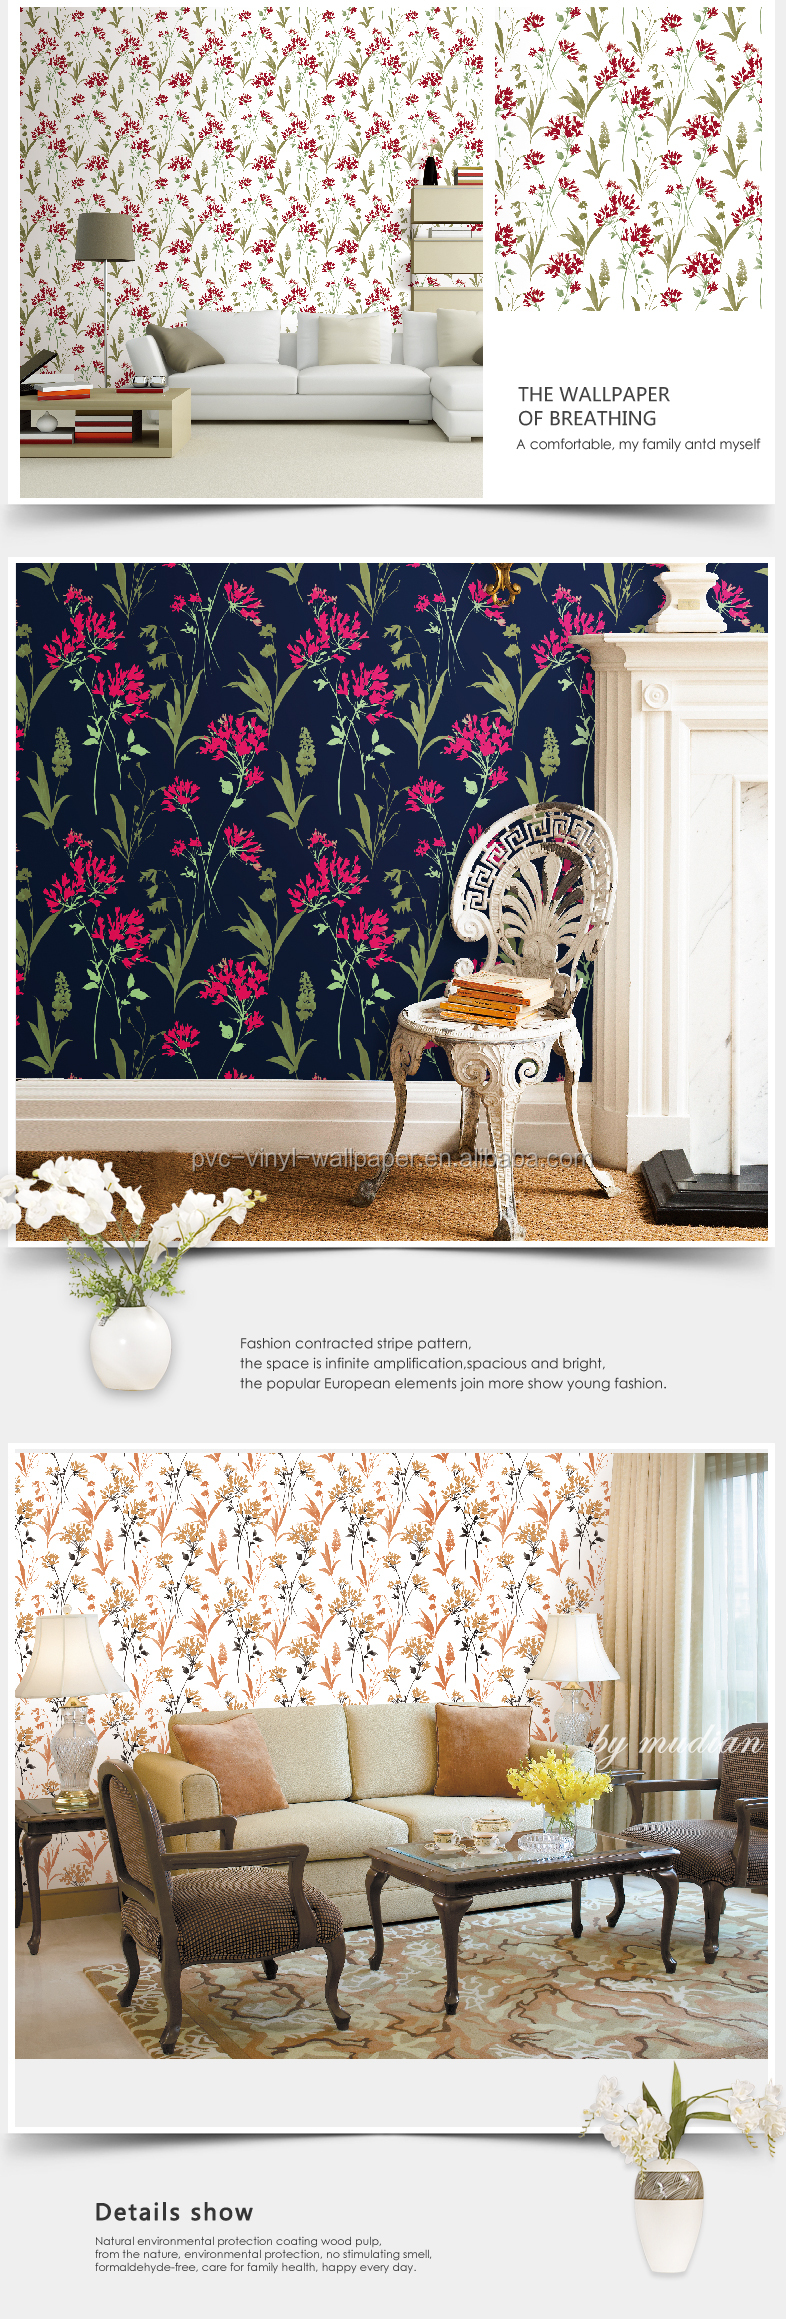 LATEST VINYL 3D WALL BOARD WALLPAPER DESIGN